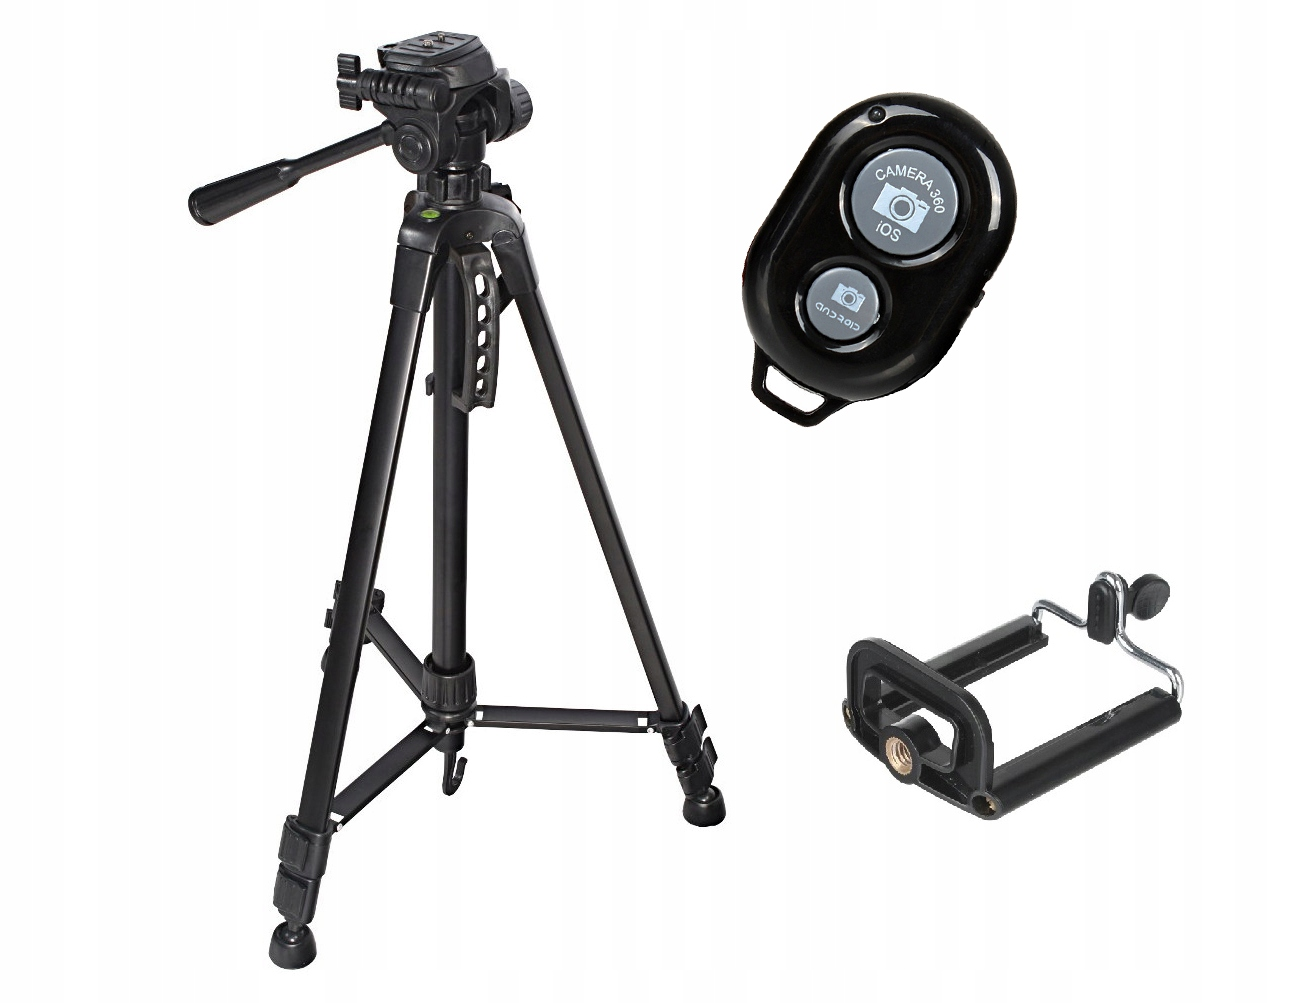 Item 3 in 1 HIGH ST540 TRIPOD +remote control + HOLDER FOR PHONE